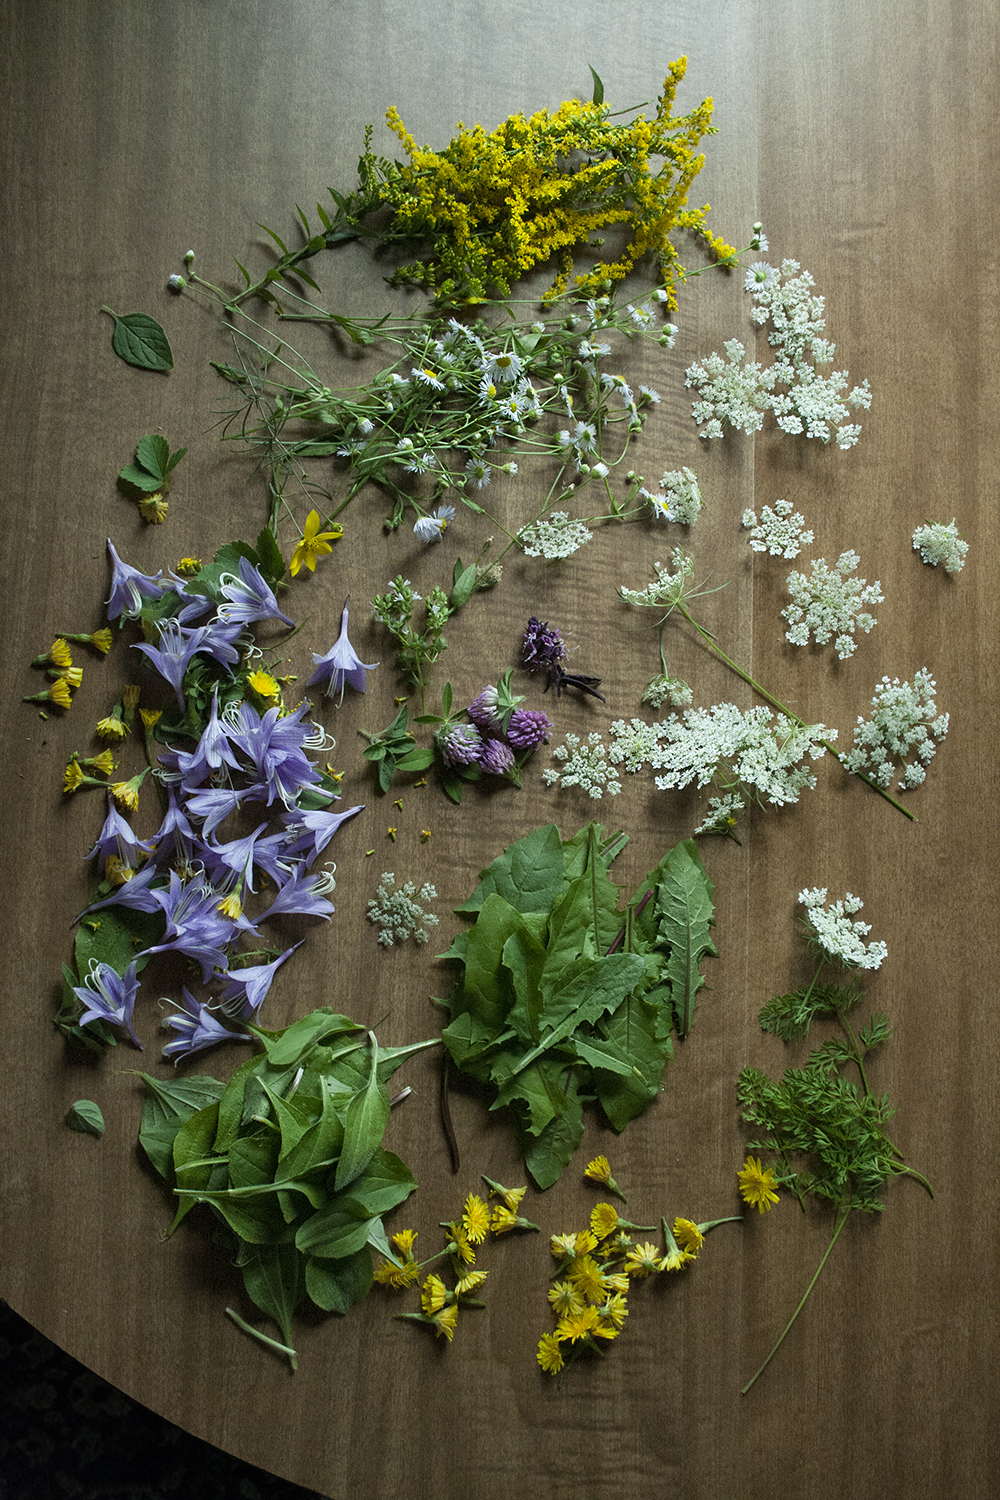 Top center: Goldenrod, below that is Fleabane (white daisy-like flowers). Right: Queen Anne's Lace (white, lacy flowers and spiky leaves). Bottom: Yellow hawkweed, Plantain leaf. Center: Red clover, Basil flower, Dandelion leaves. Left: Purple hosta blossoms.